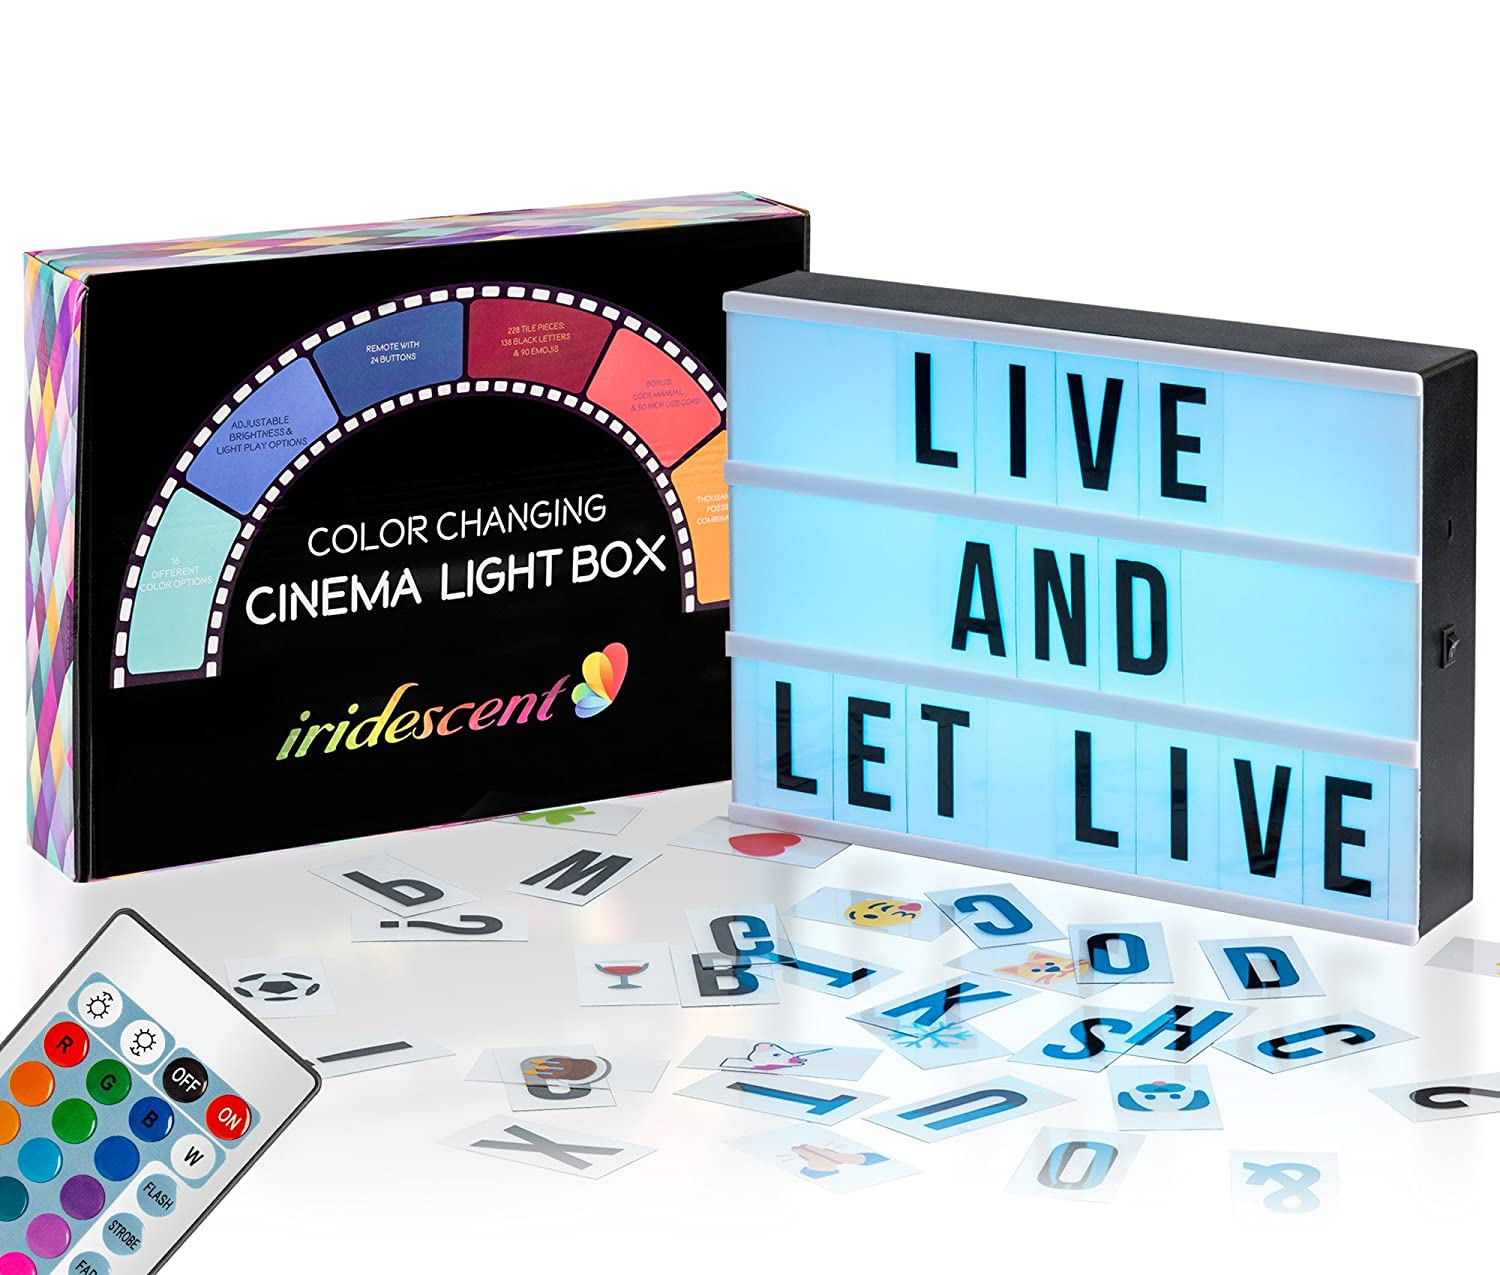 Color Changing Cinema Light Box with Letters - 228 Total Letters, Numbers & Emojis | 16 Colors Remote-controlled PREMIUM Cinematic Marquee Sign Light Box | NEW for 2018! LED Light Up Letter Box Sign Iridescent